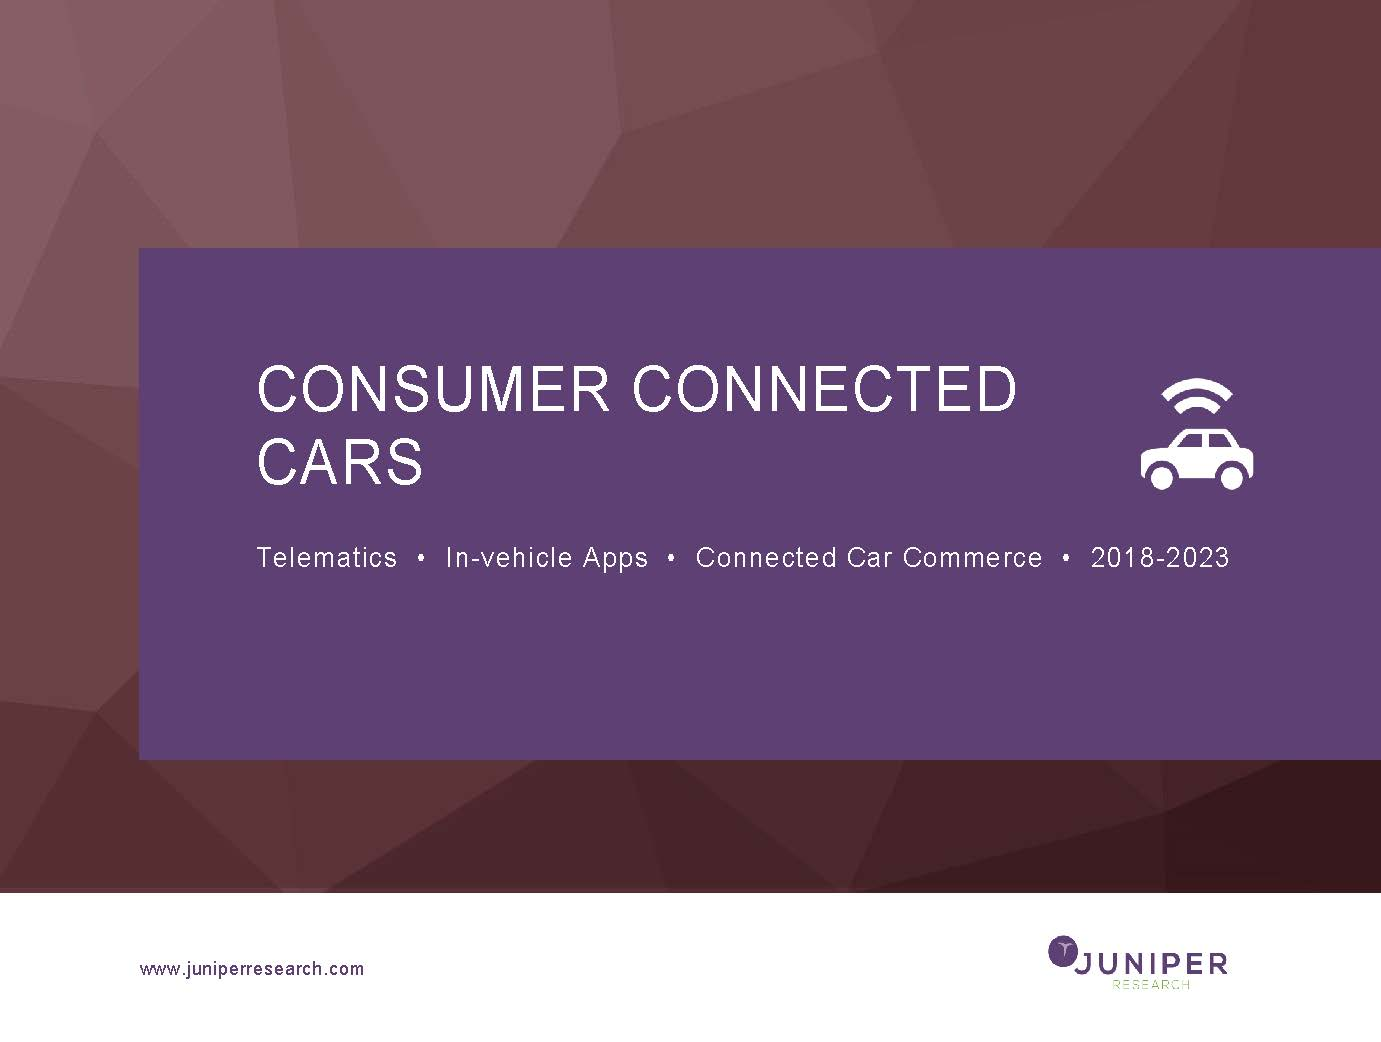 Consumer Connected Cars: Deep Dive Data 2018-2023